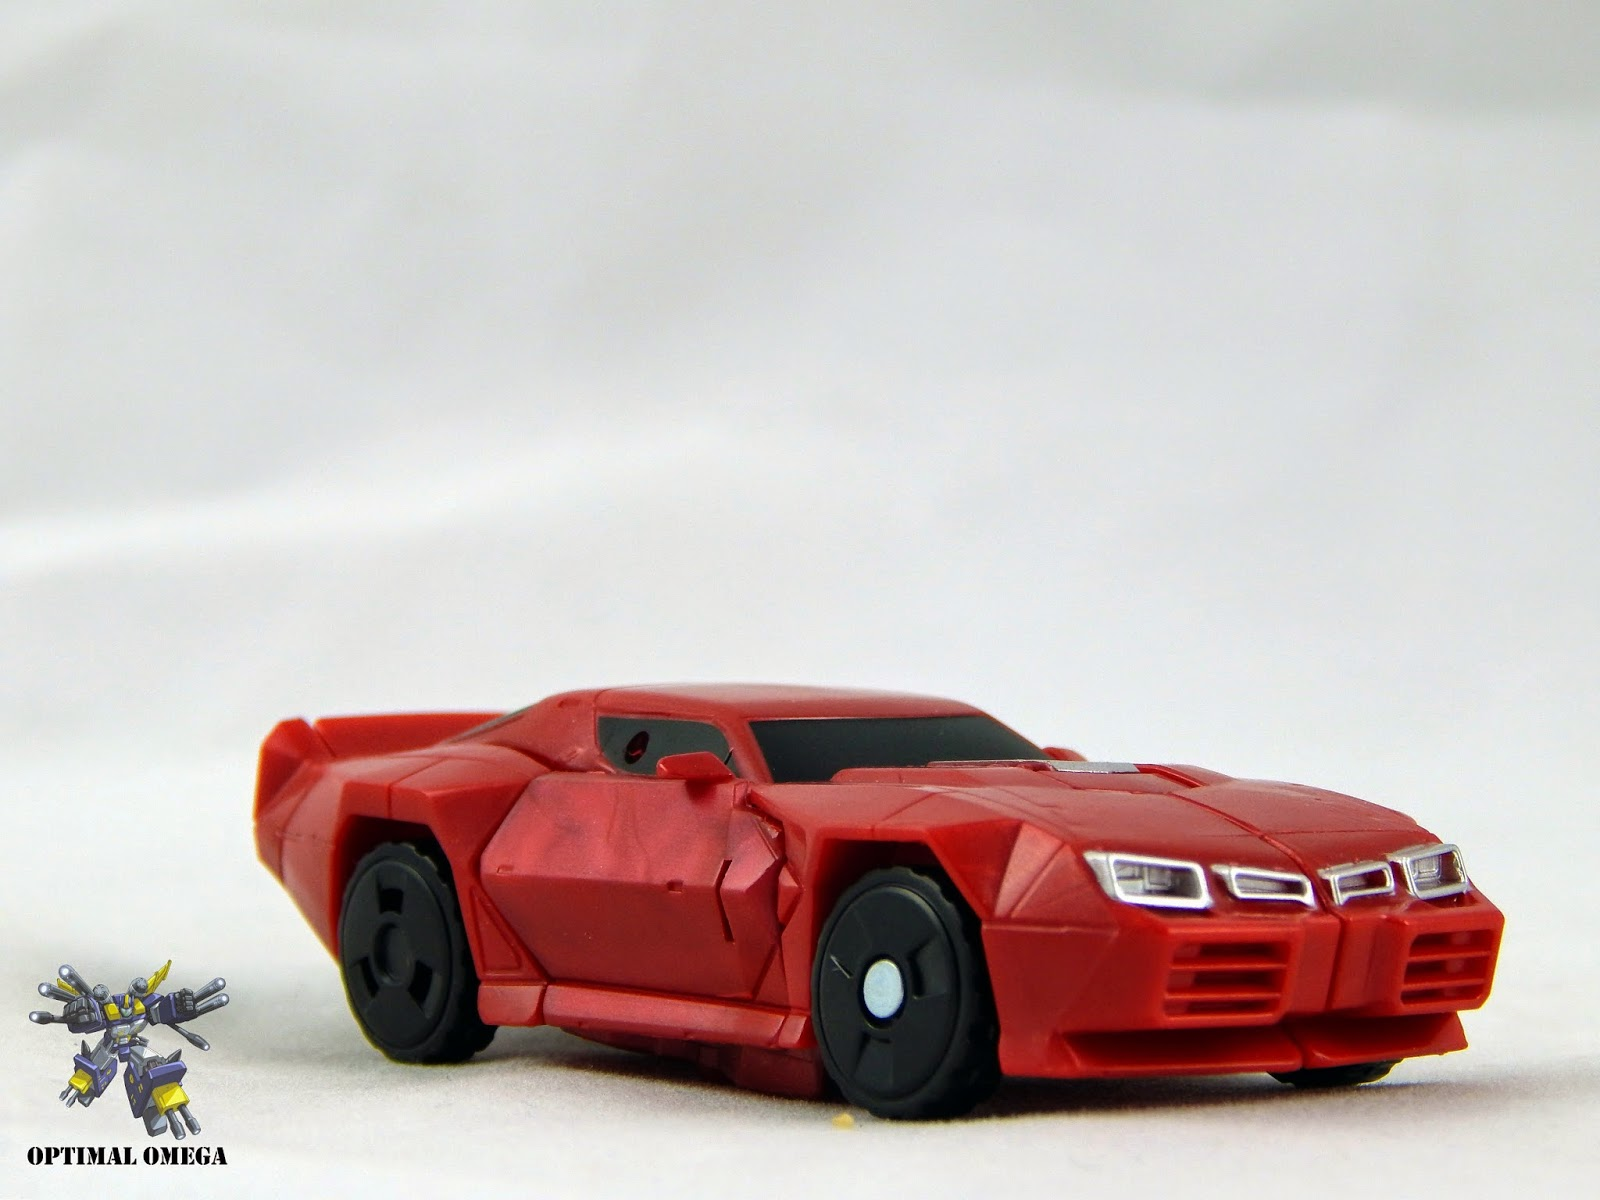 Windcharger Transforms Into A Camaro Type Car. Or A Trans Am Type Car. Itu0027s  A Red Sports Car. The Red Definitely Looks Much, Much Better Than  Tailgateu0027s ...